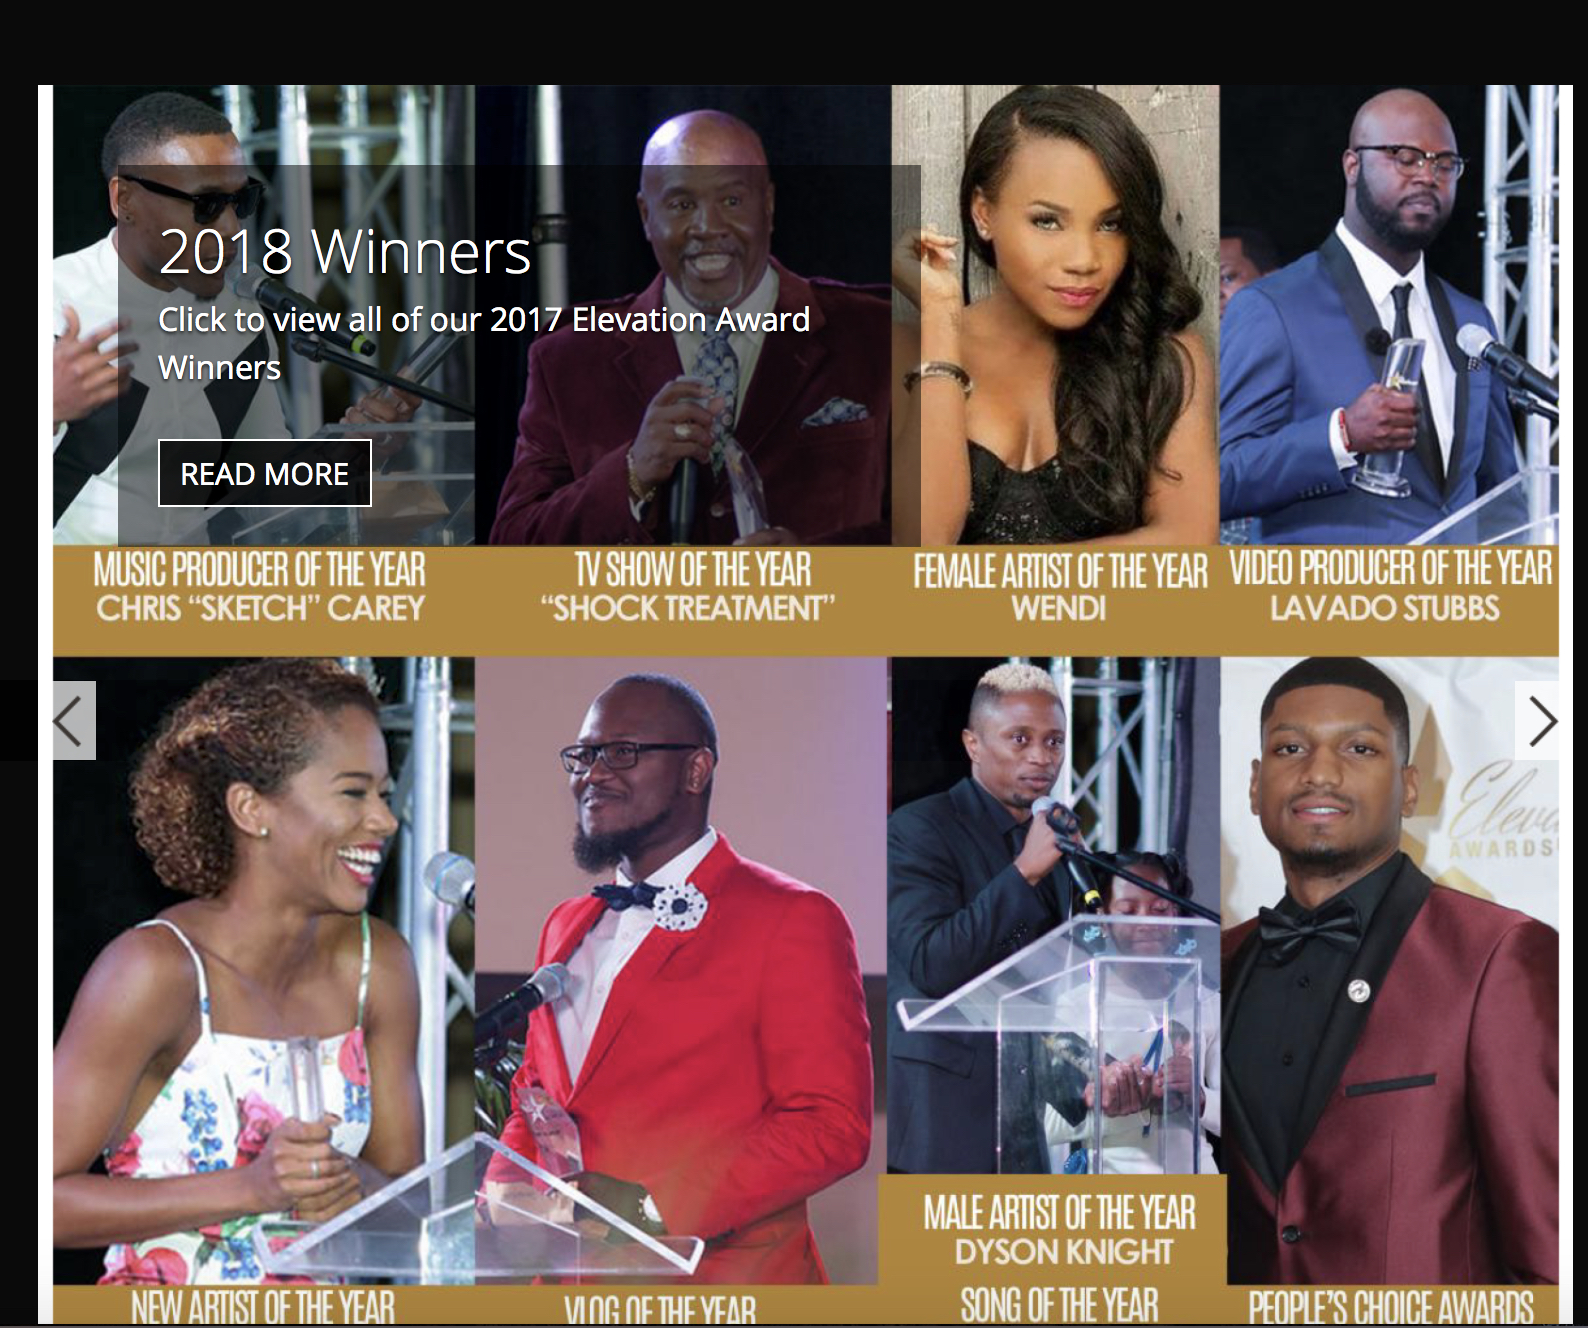 Elevation Awards announced